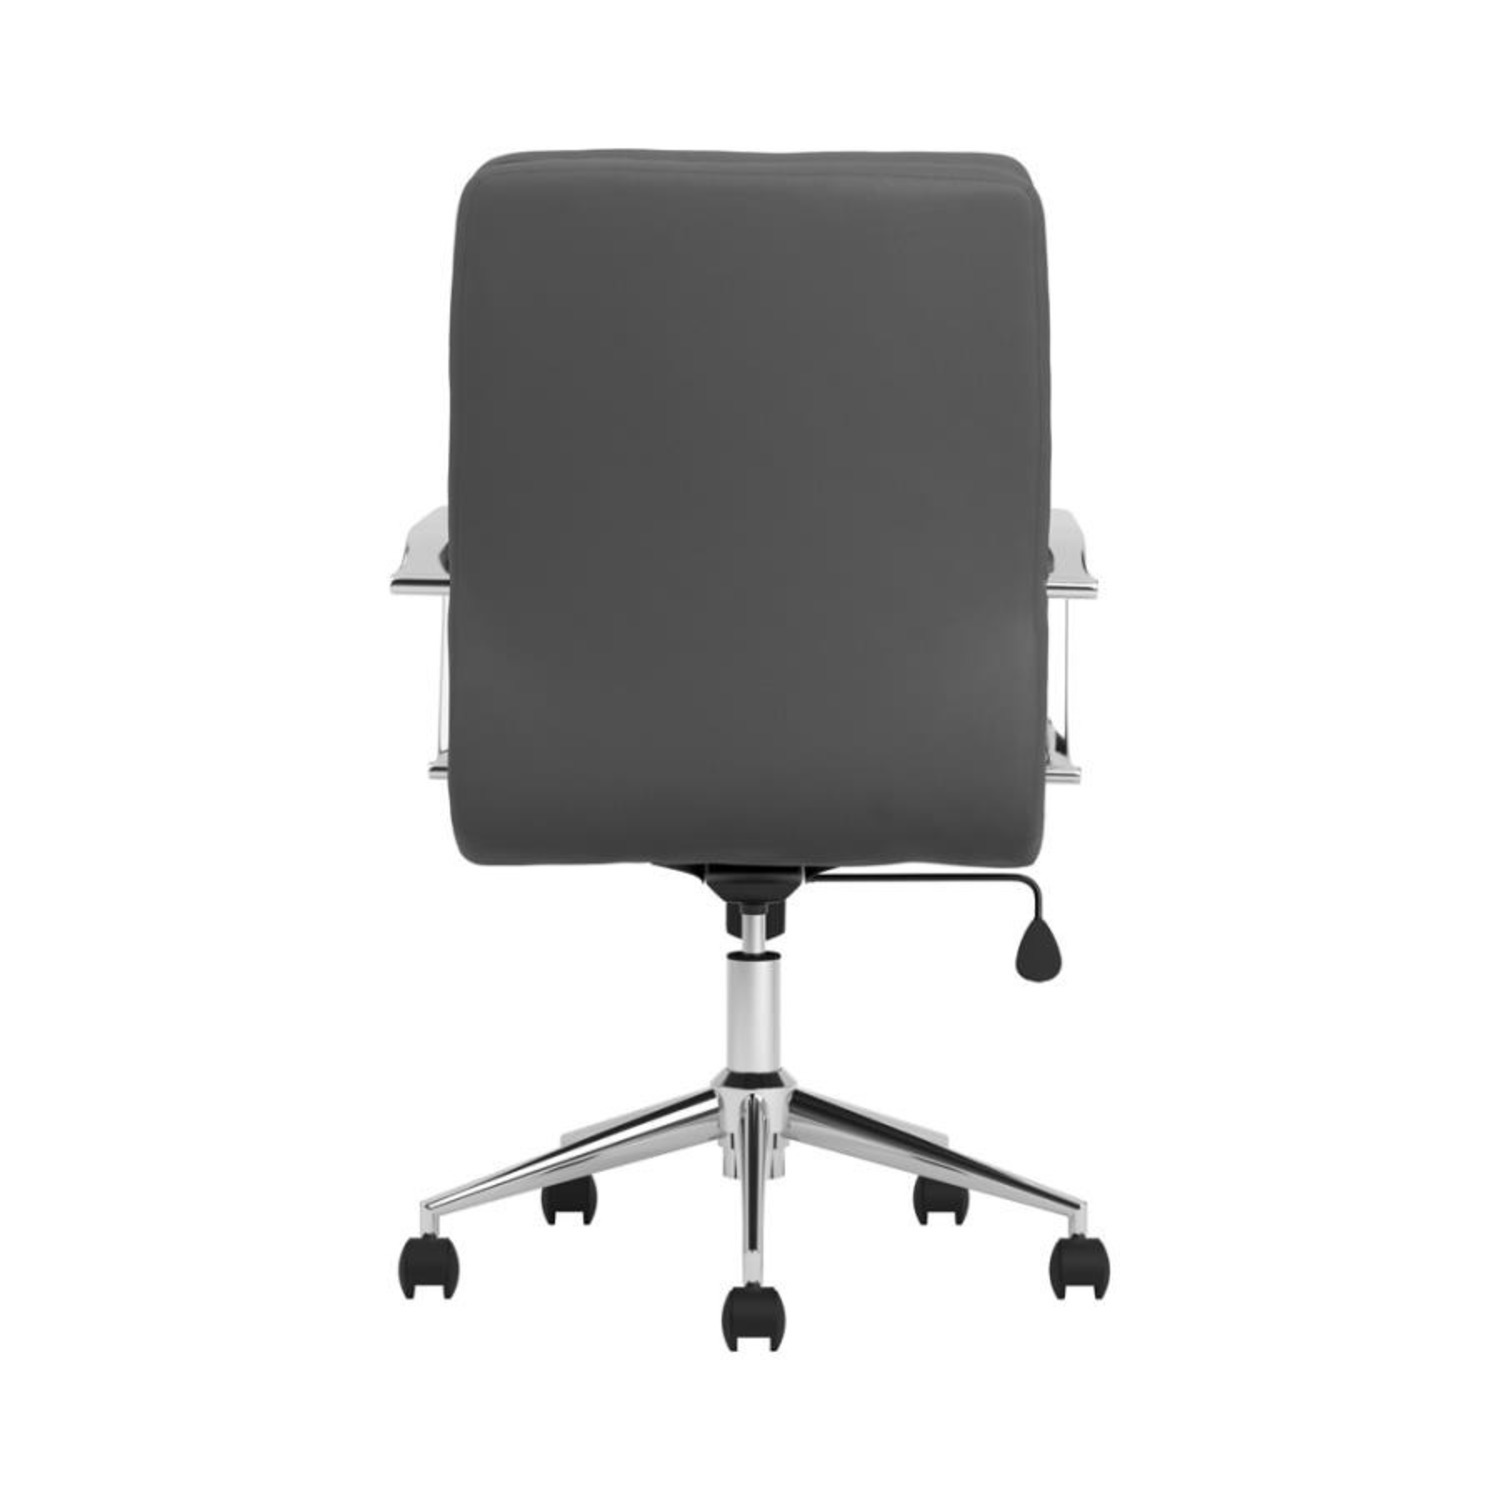 Office Chair In Grey Leatherette & Chrome Finish - image-4